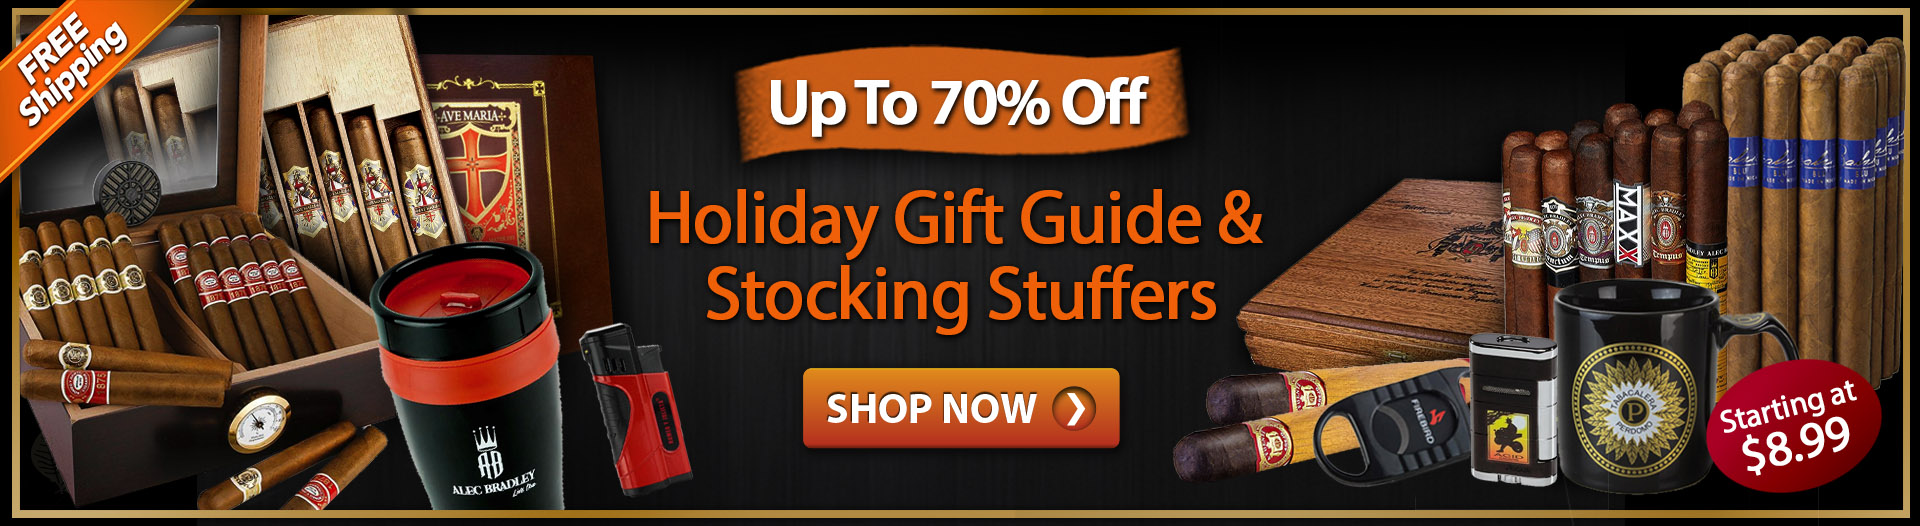 Holiday Gift Guide Is Here. Save Up to 70%